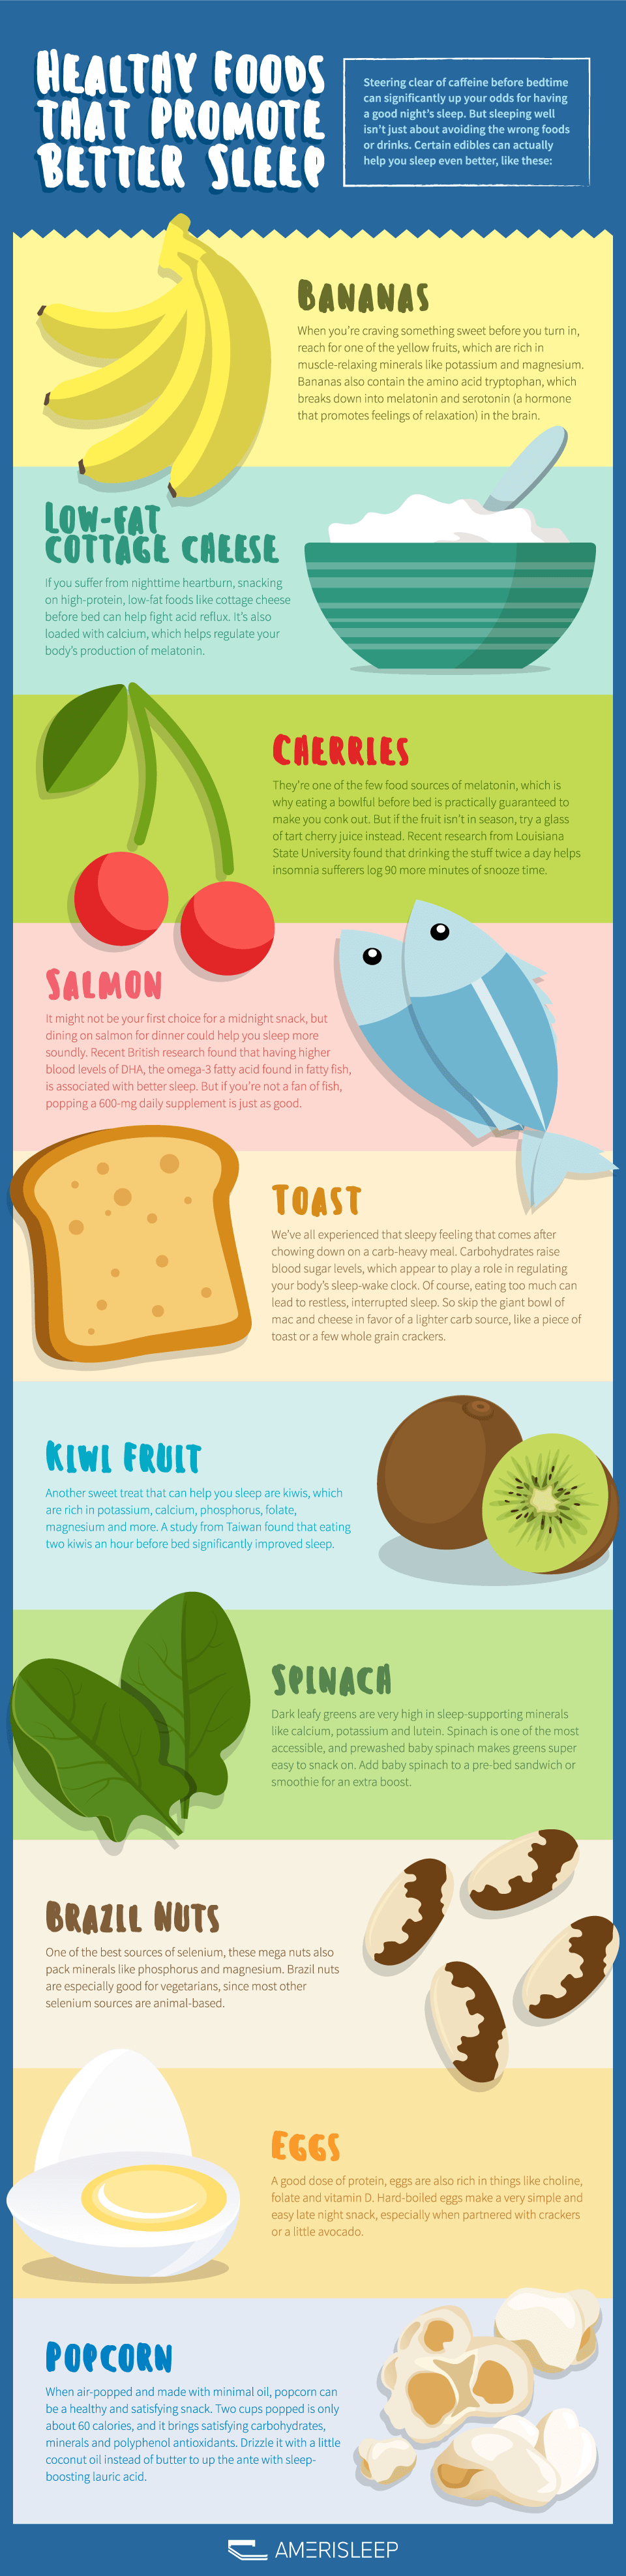 span amerisleep-healthy-foods-that-promote-better-sleep-infographic